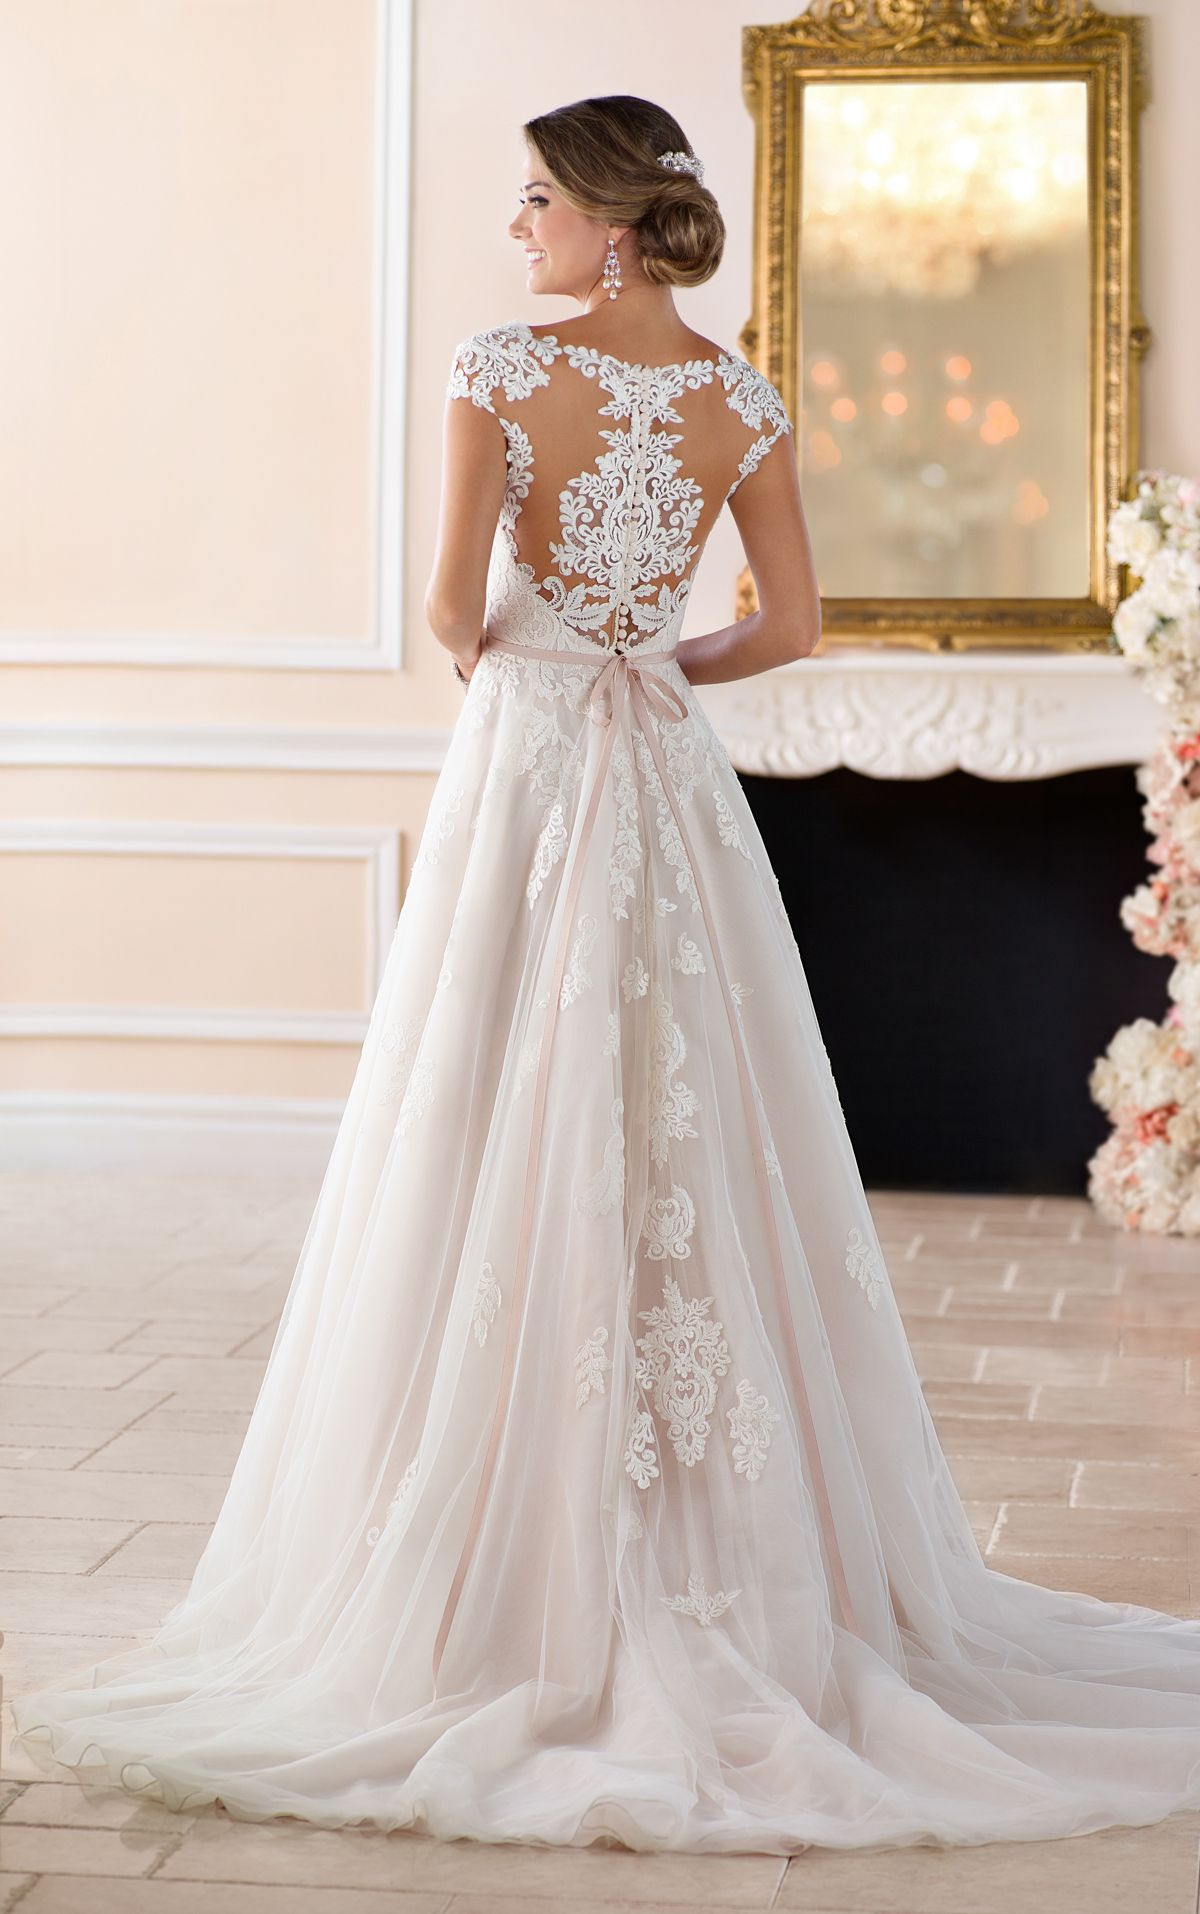 Lace cap sleeve a line wedding dress  Romantic Cap Sleeve Wedding Dress With Cameo Back  Unique dresses